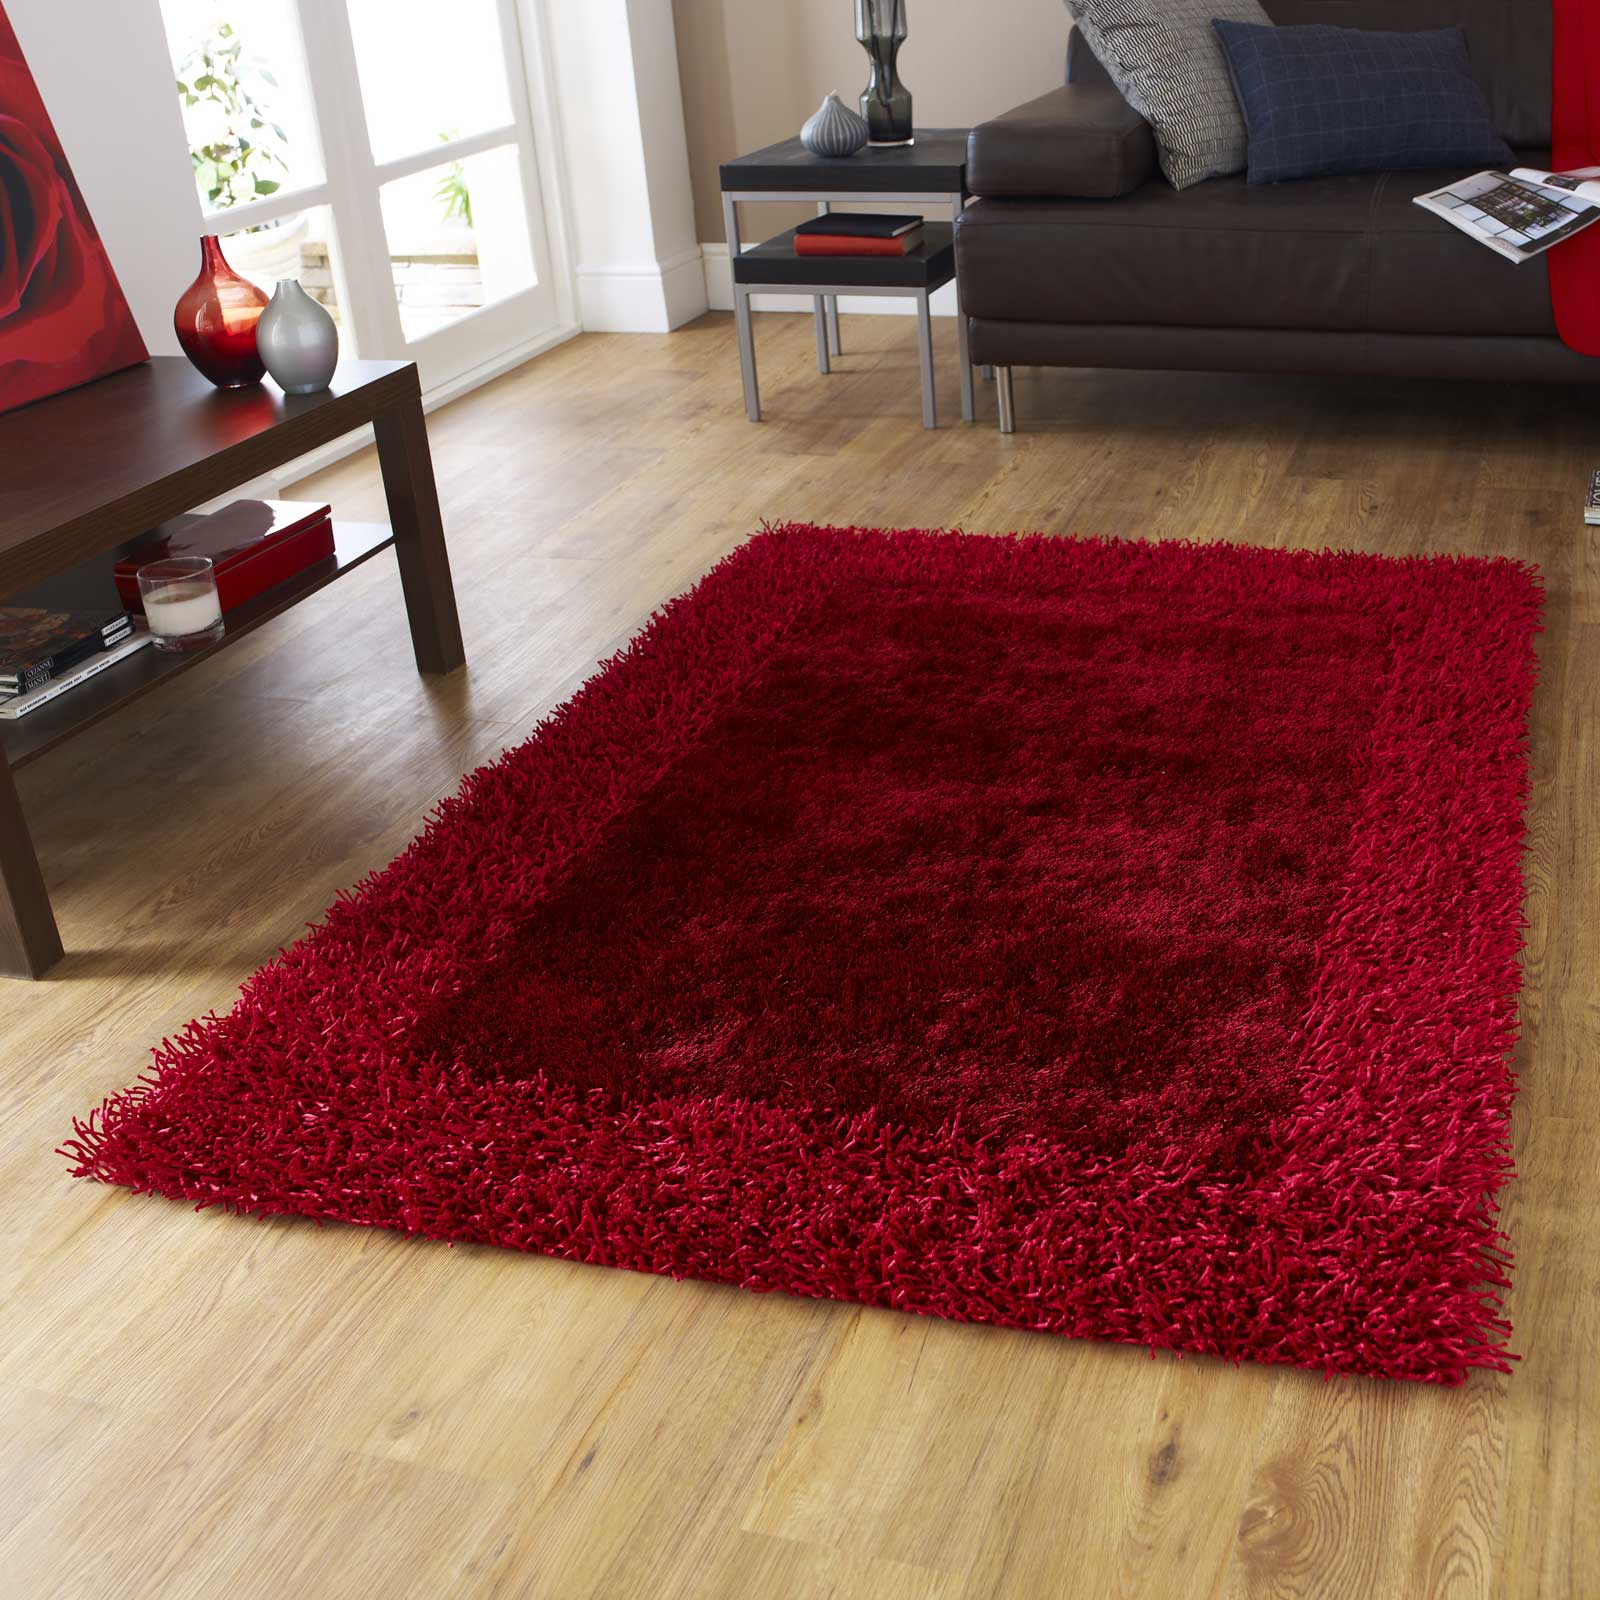 Sable Two Shiney Shaggy Rugs in Red